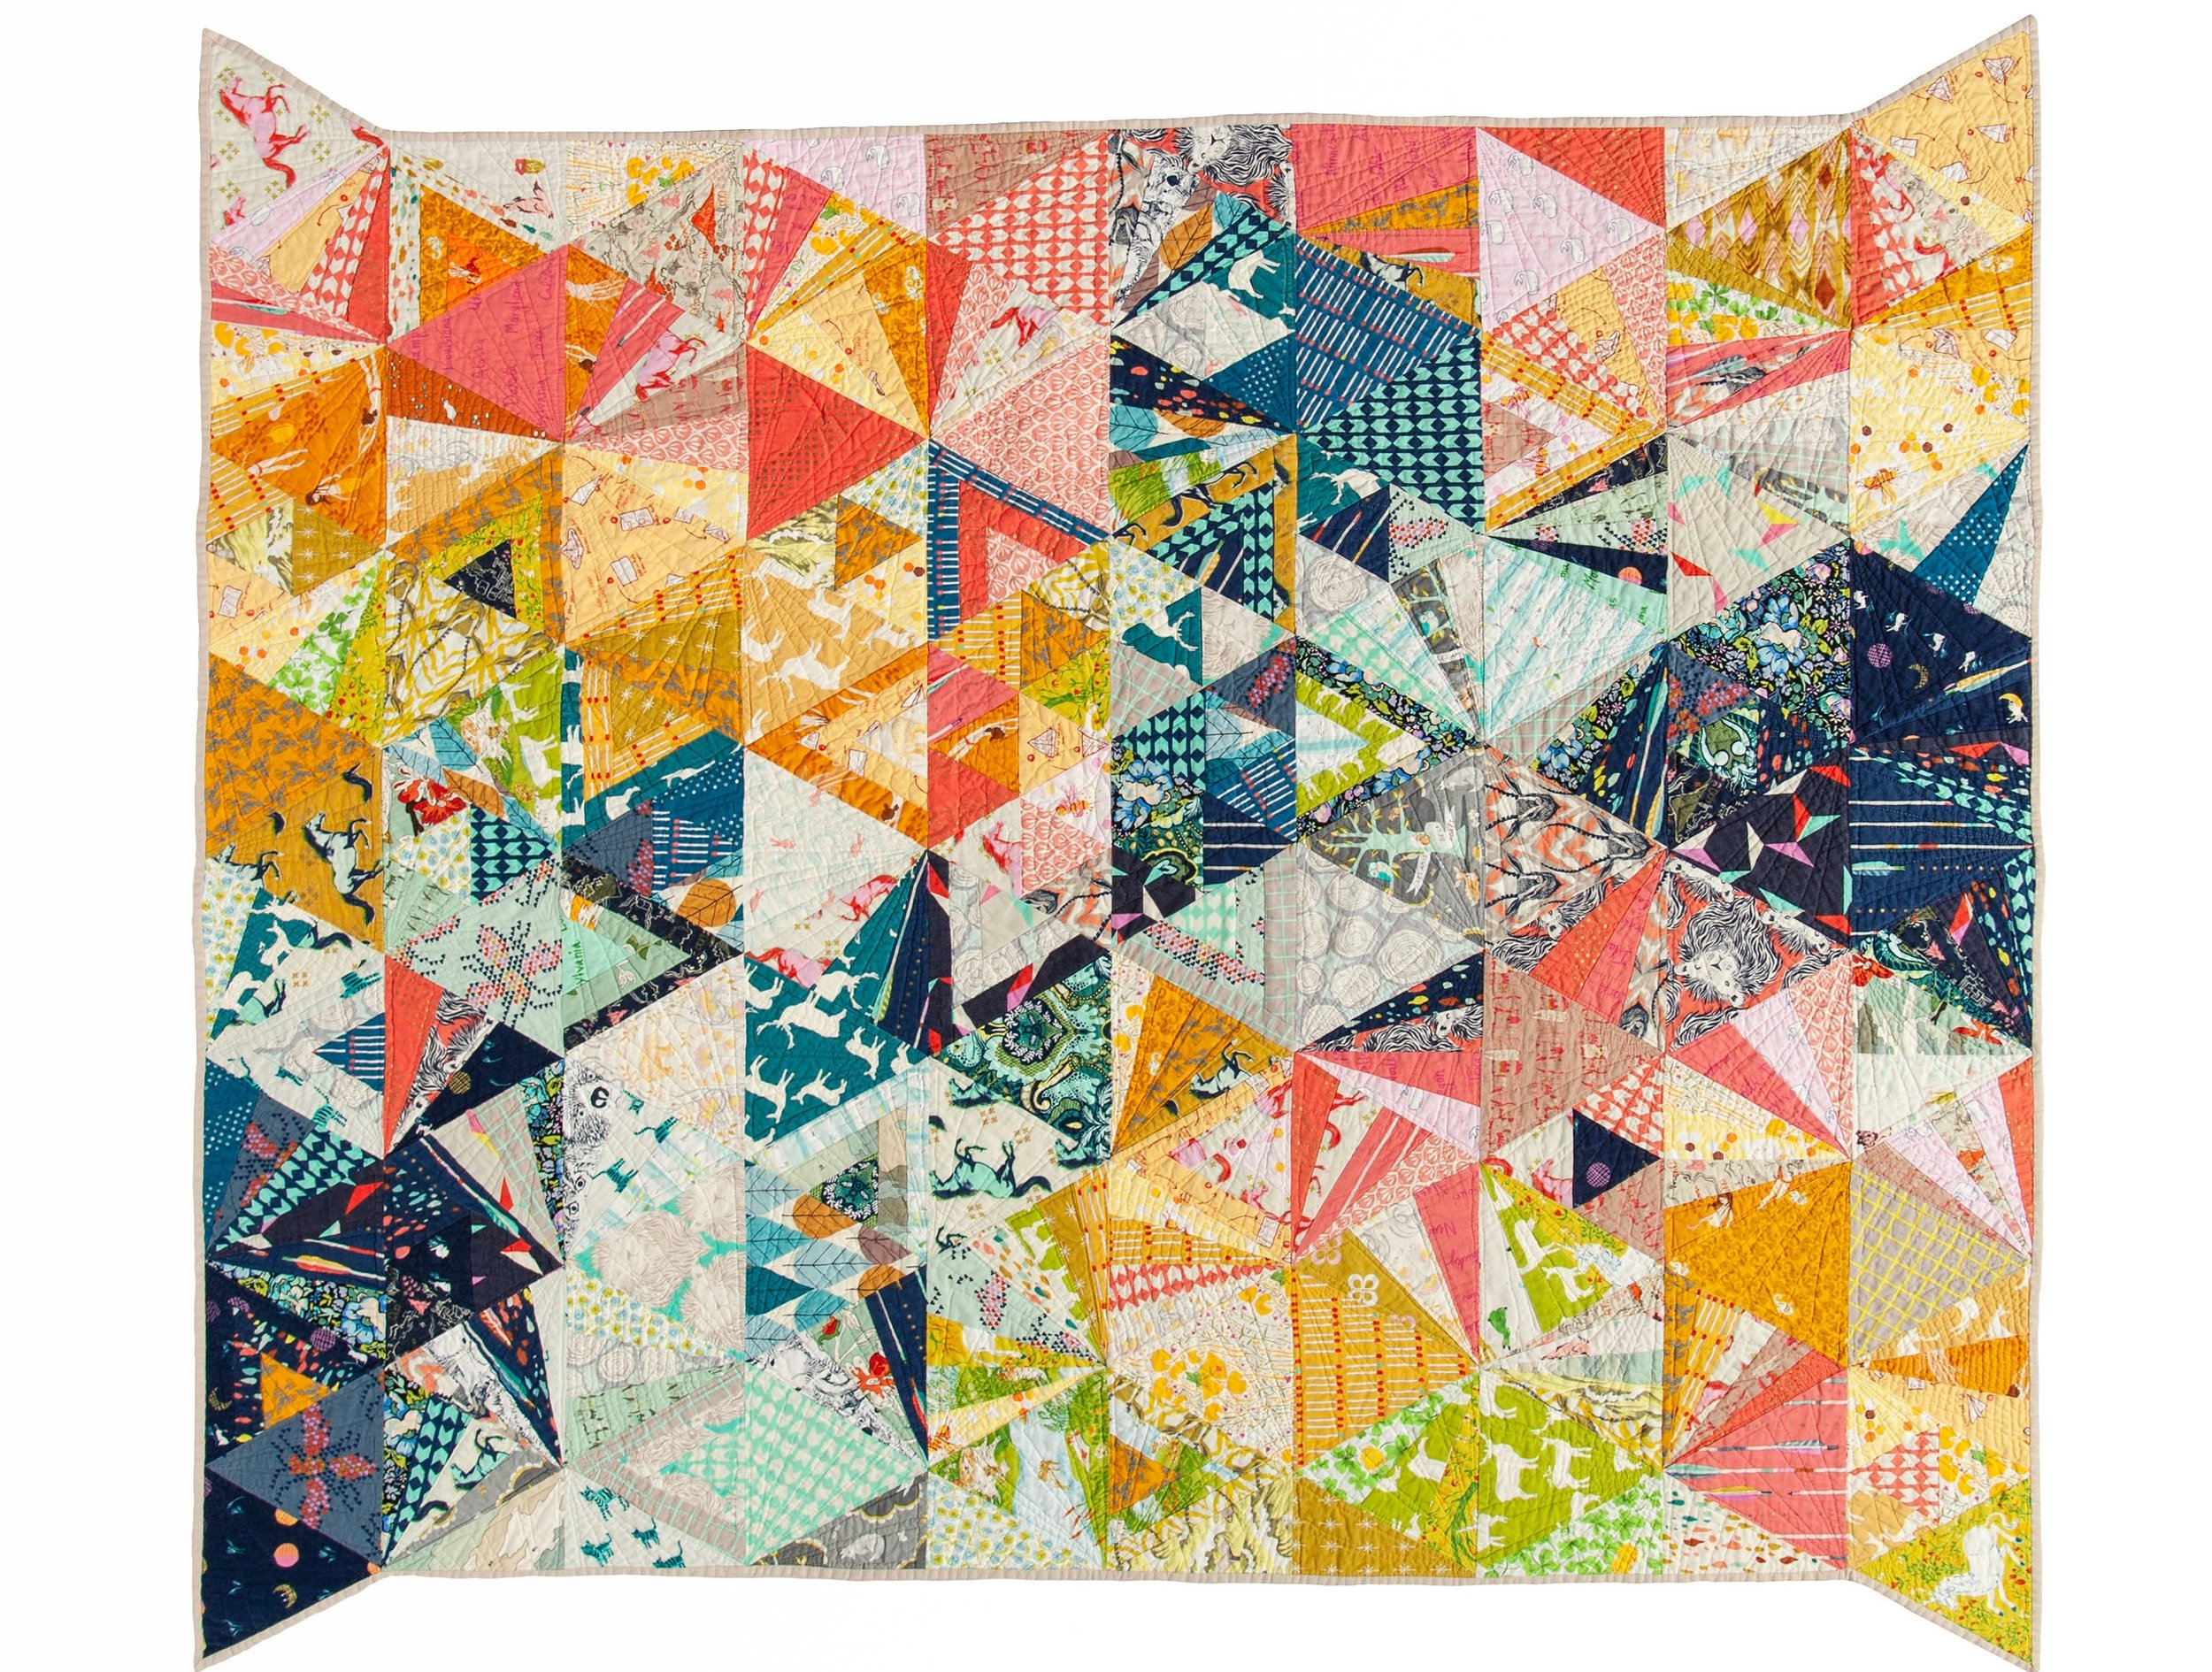 Eschbaugh_Meghan_Quilt_1(1of8).jpg